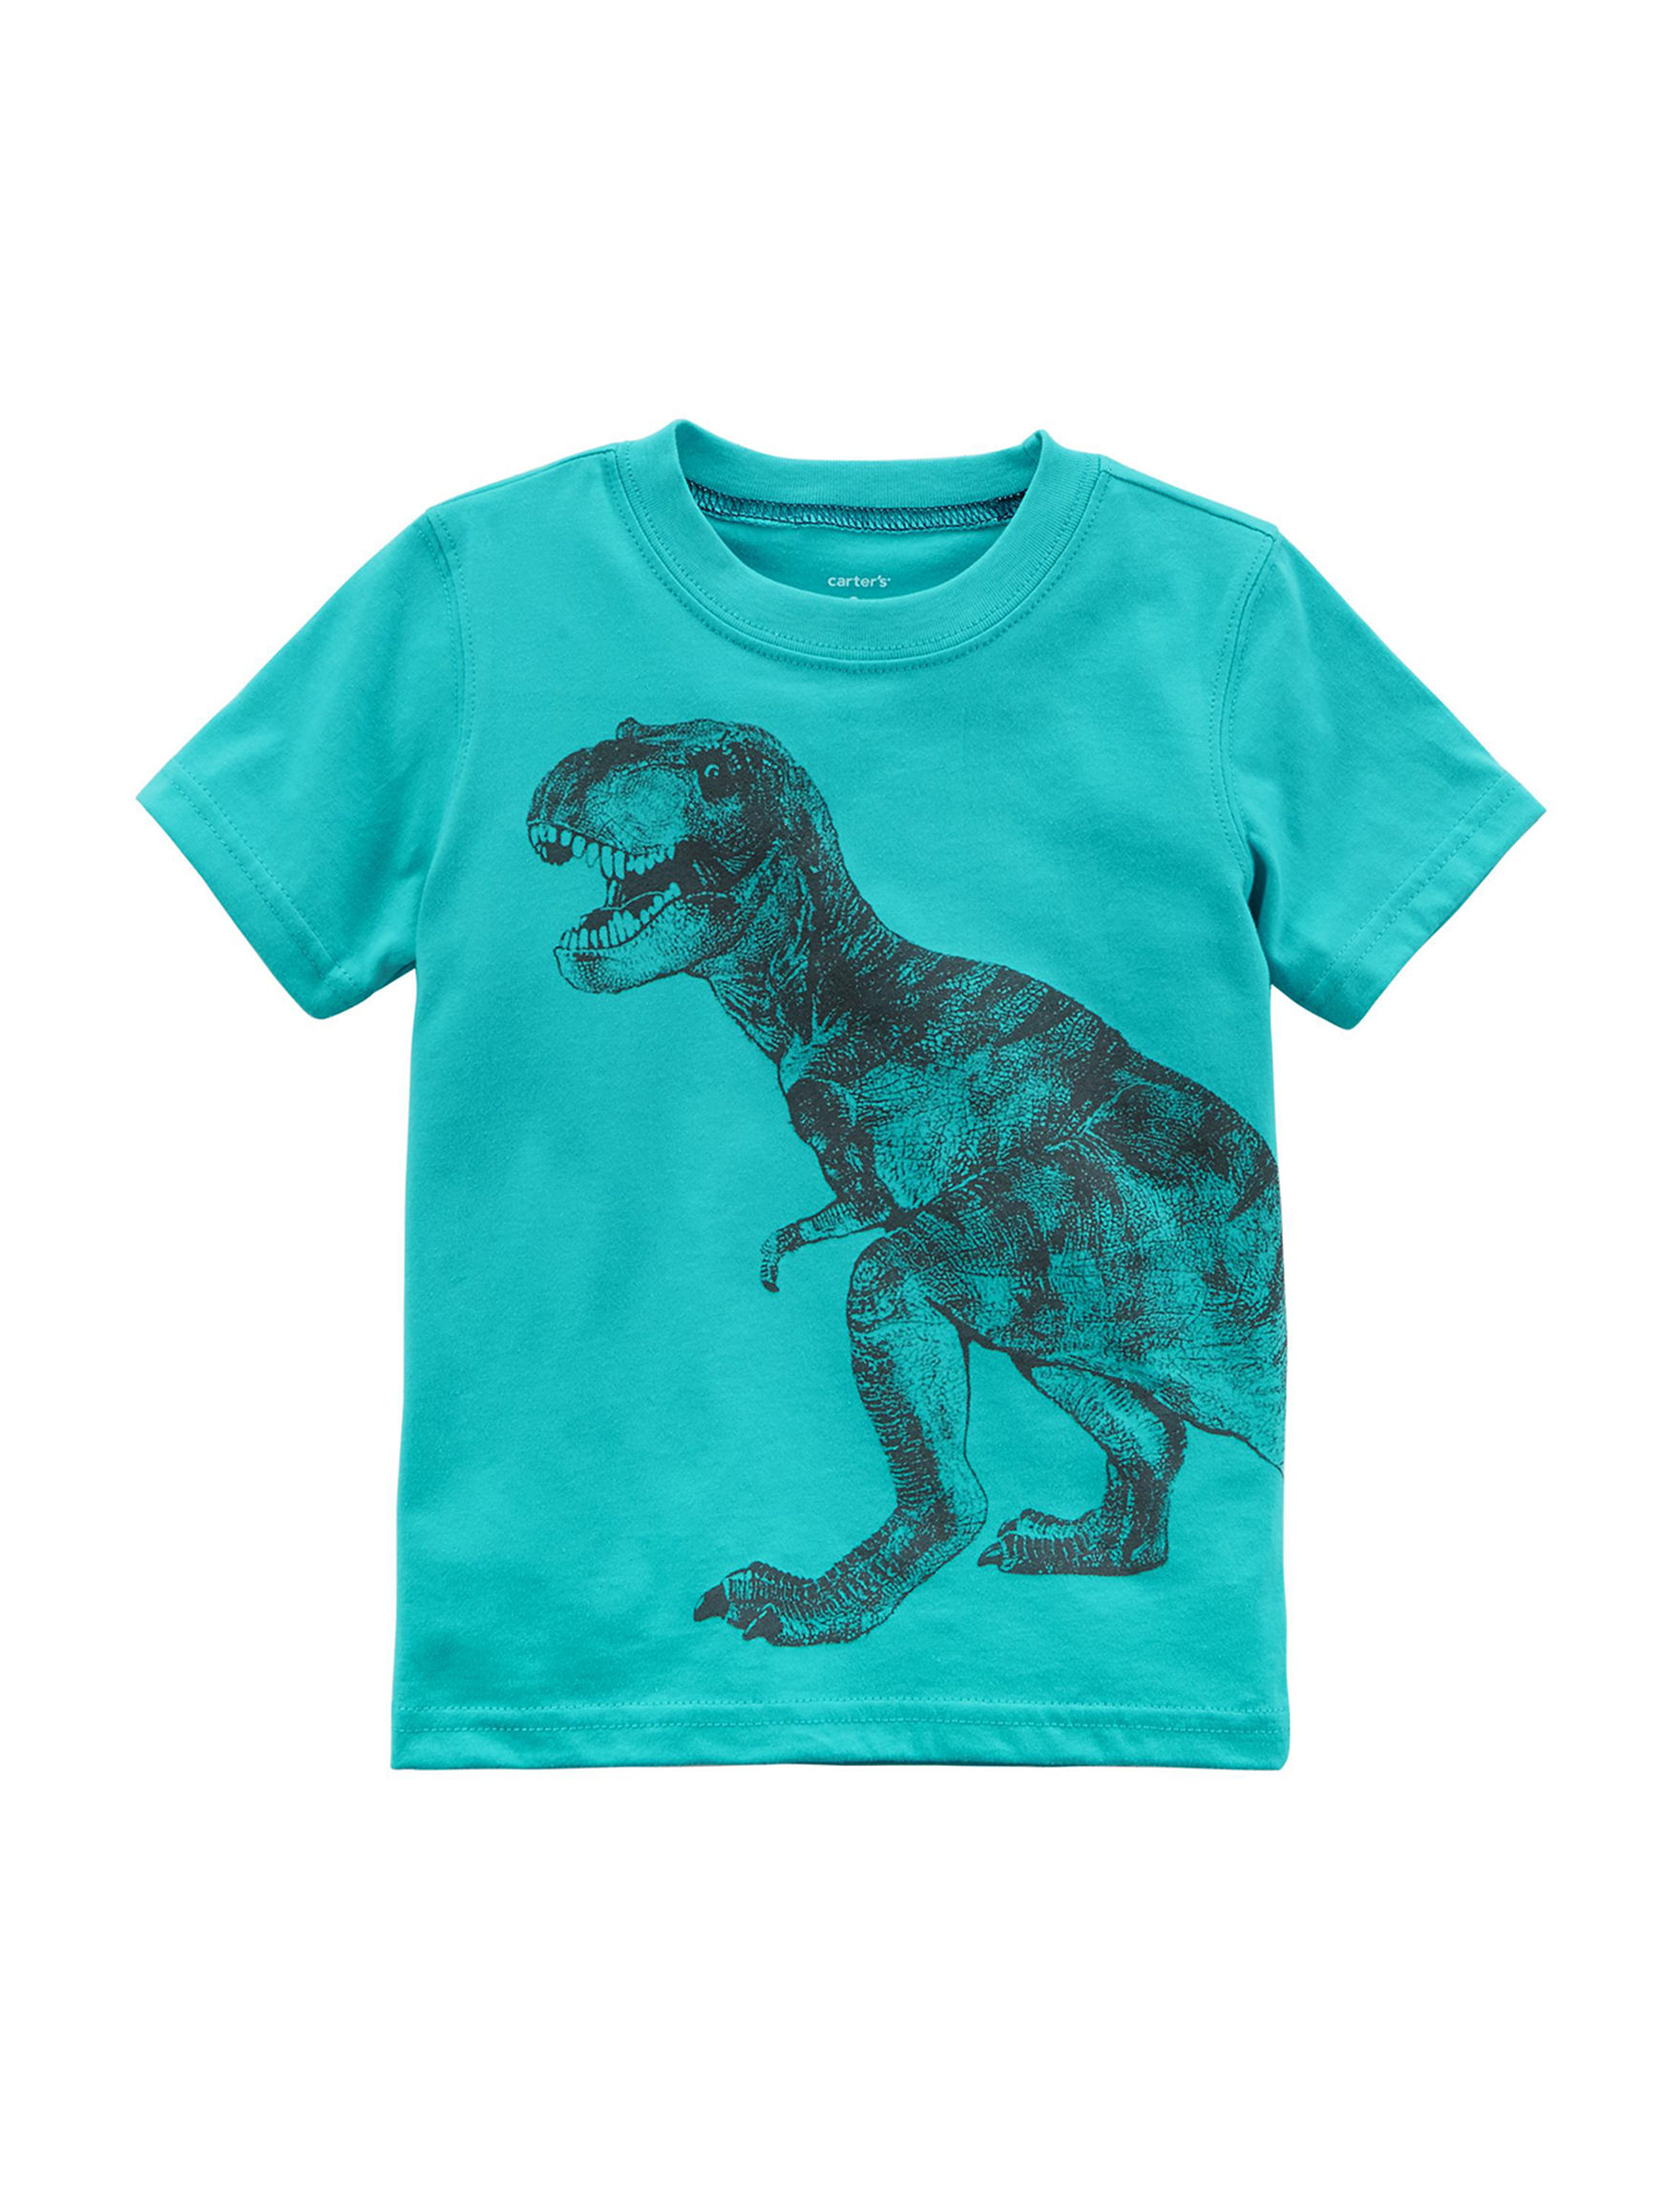 Carter's Turquoise Tees & Tanks